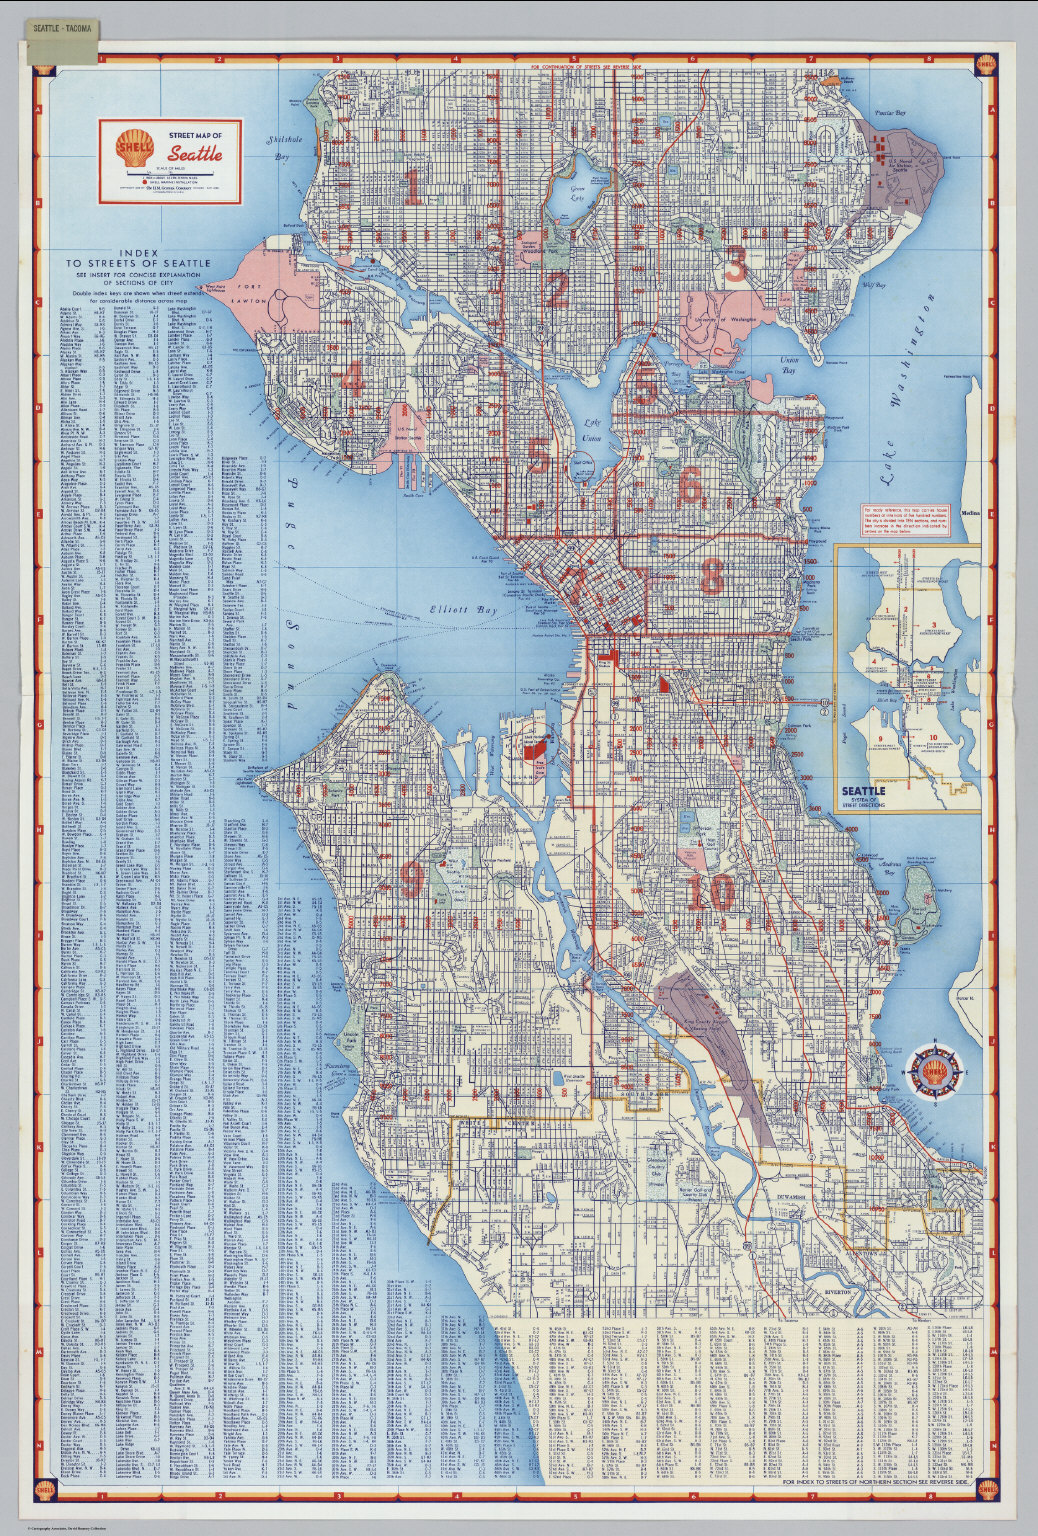 Seattle Street Map Shell Street Map of Seattle.   David Rumsey Historical Map Collection Seattle Street Map